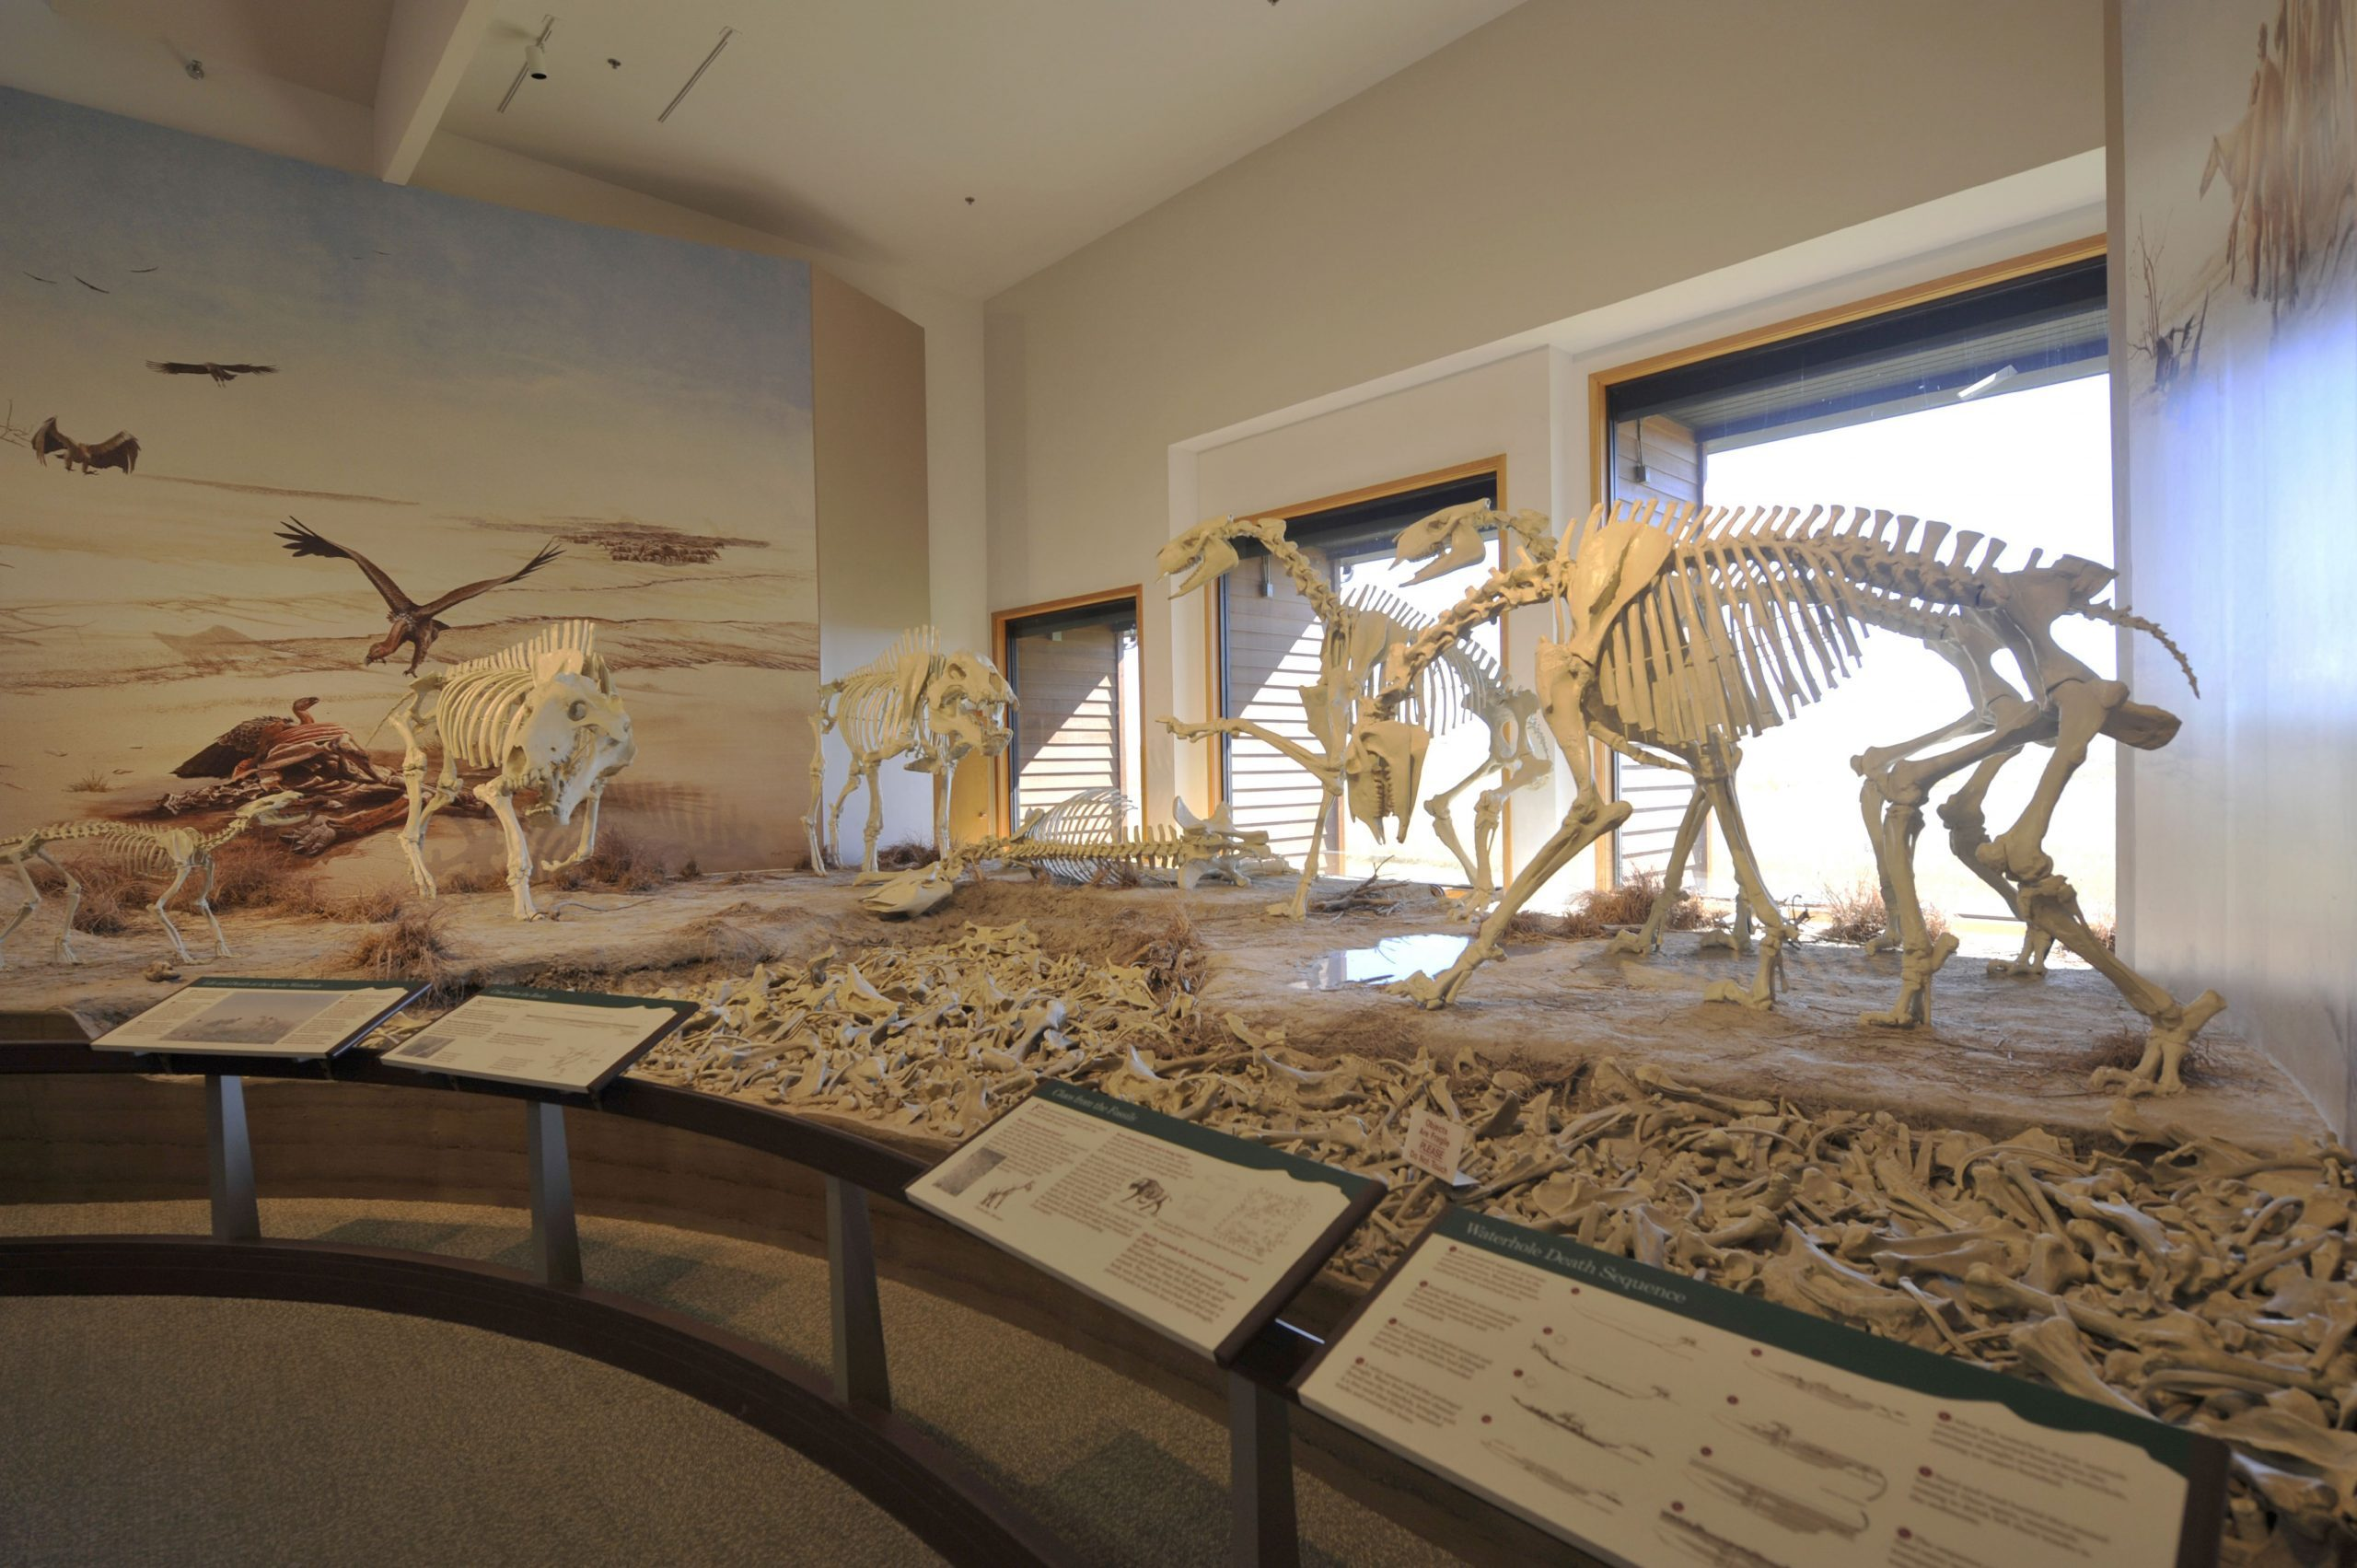 Nebraska, Agate Fossil Beds National Monument, Visitor Center, Fossil Exhibit